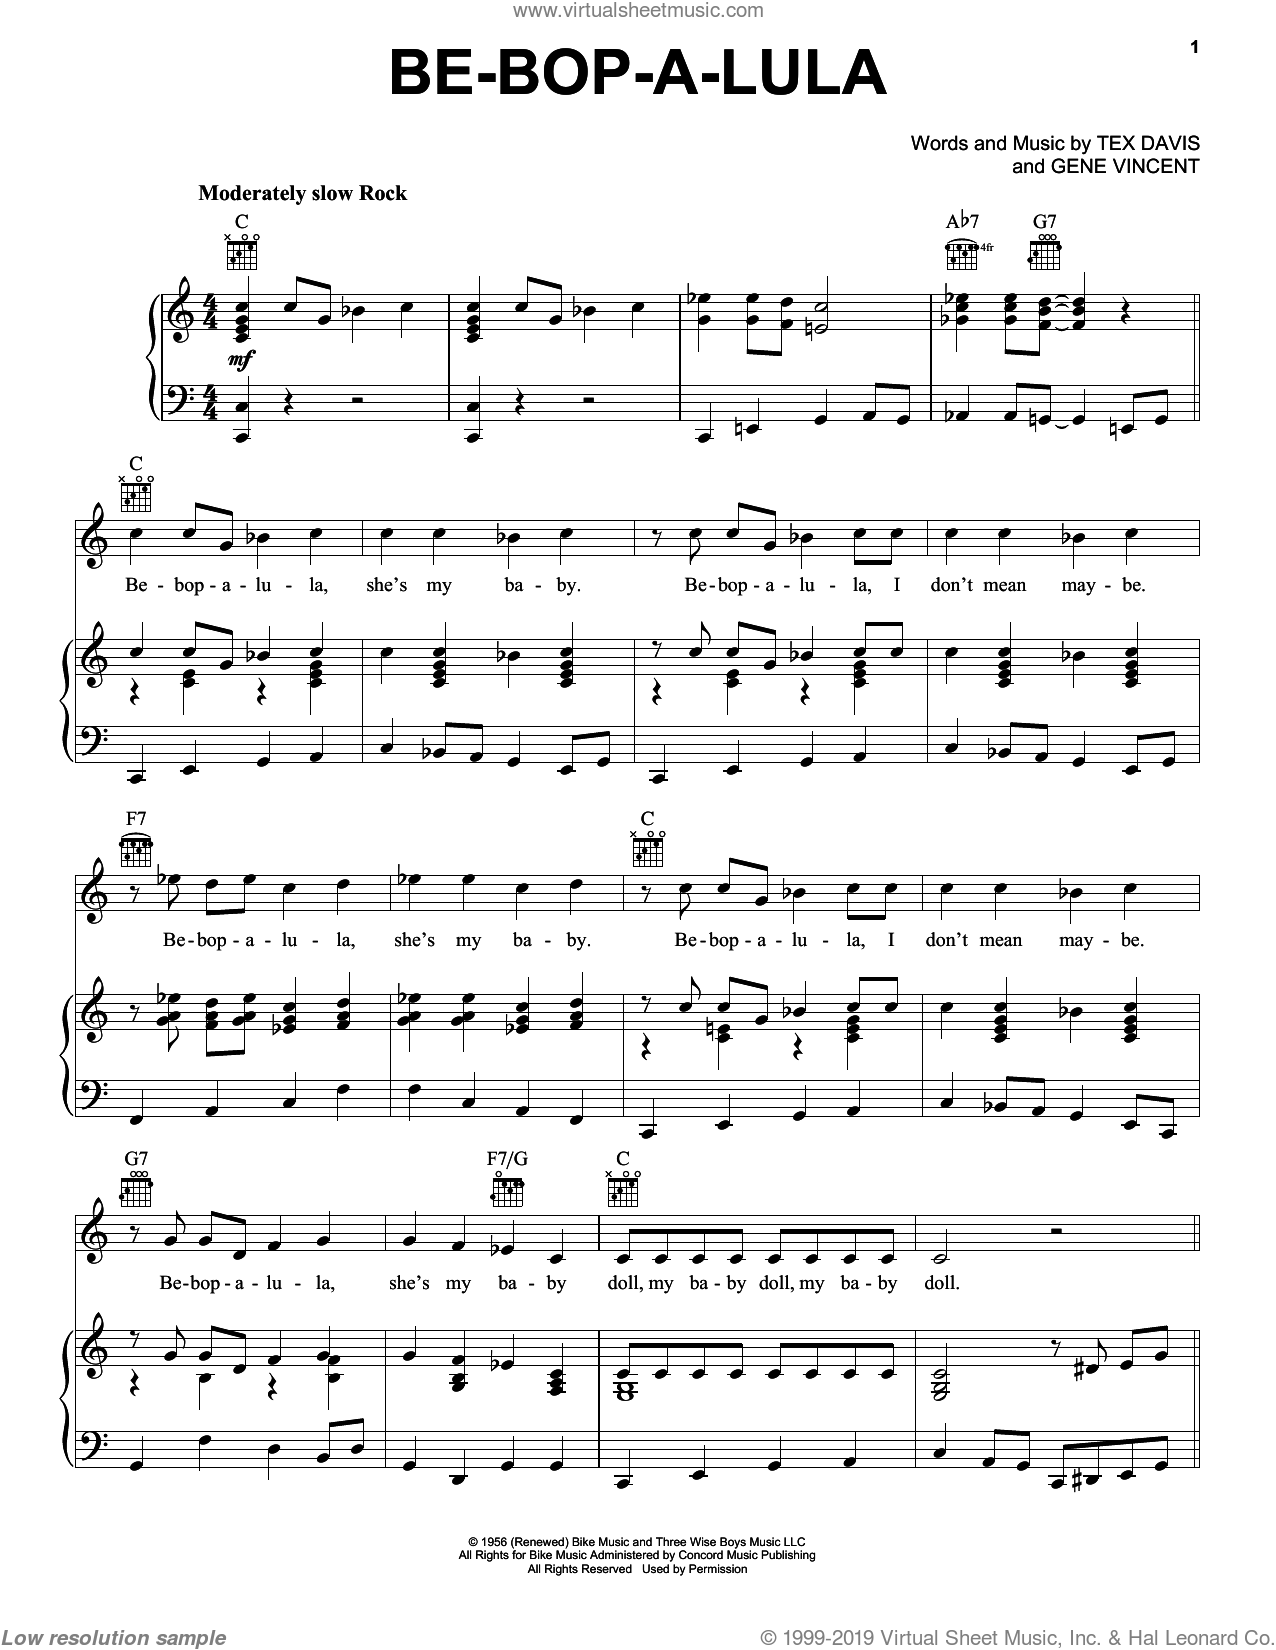 Be-Bop-A-Lula sheet music for voice, piano or guitar by Tex Davis. Score Image Preview.